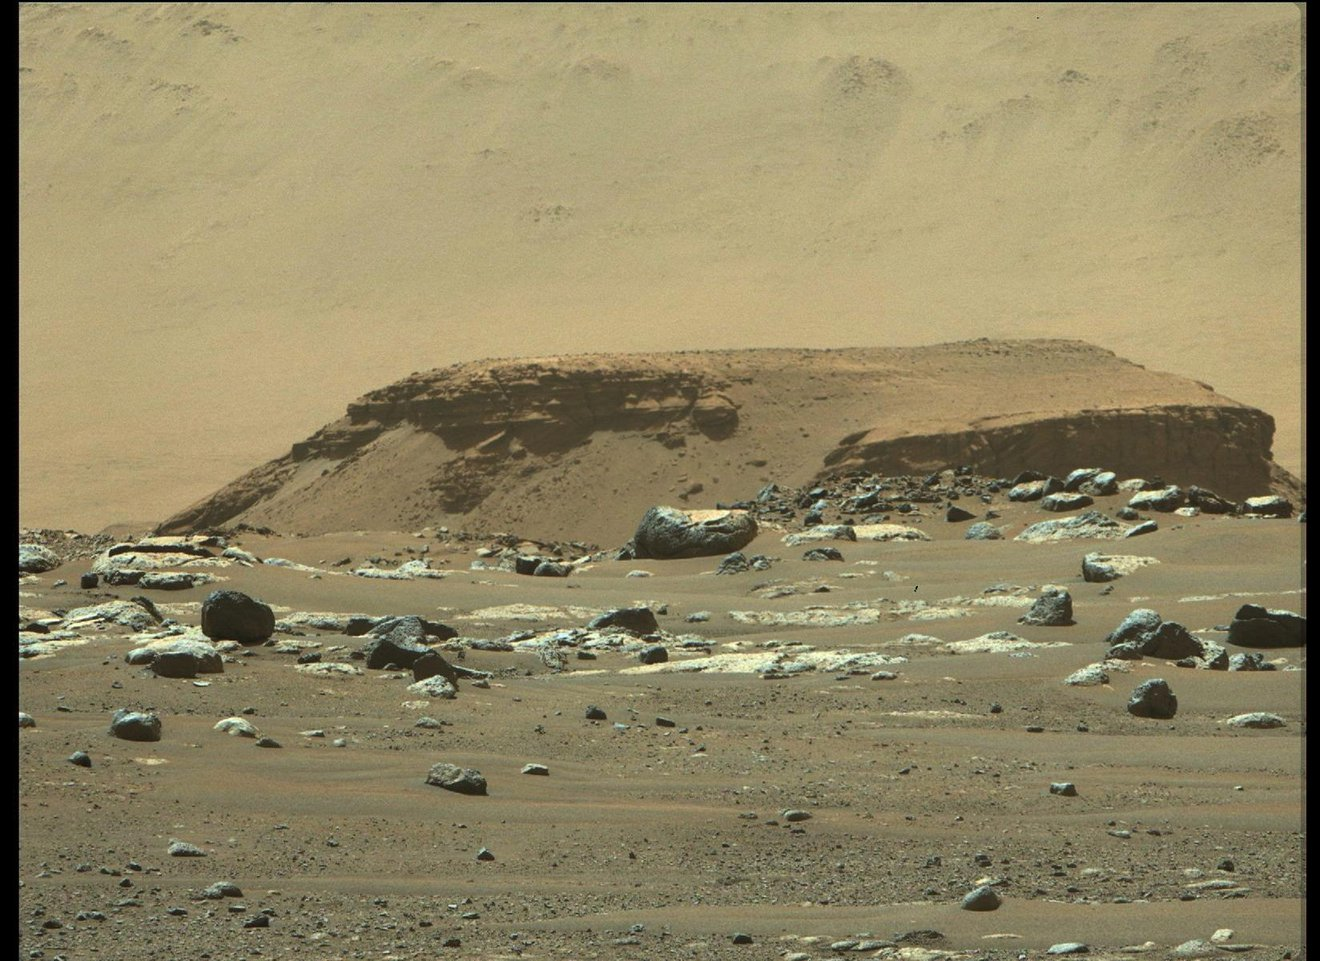 Kodiak formation on the surface of Mars seen by Perseverance.